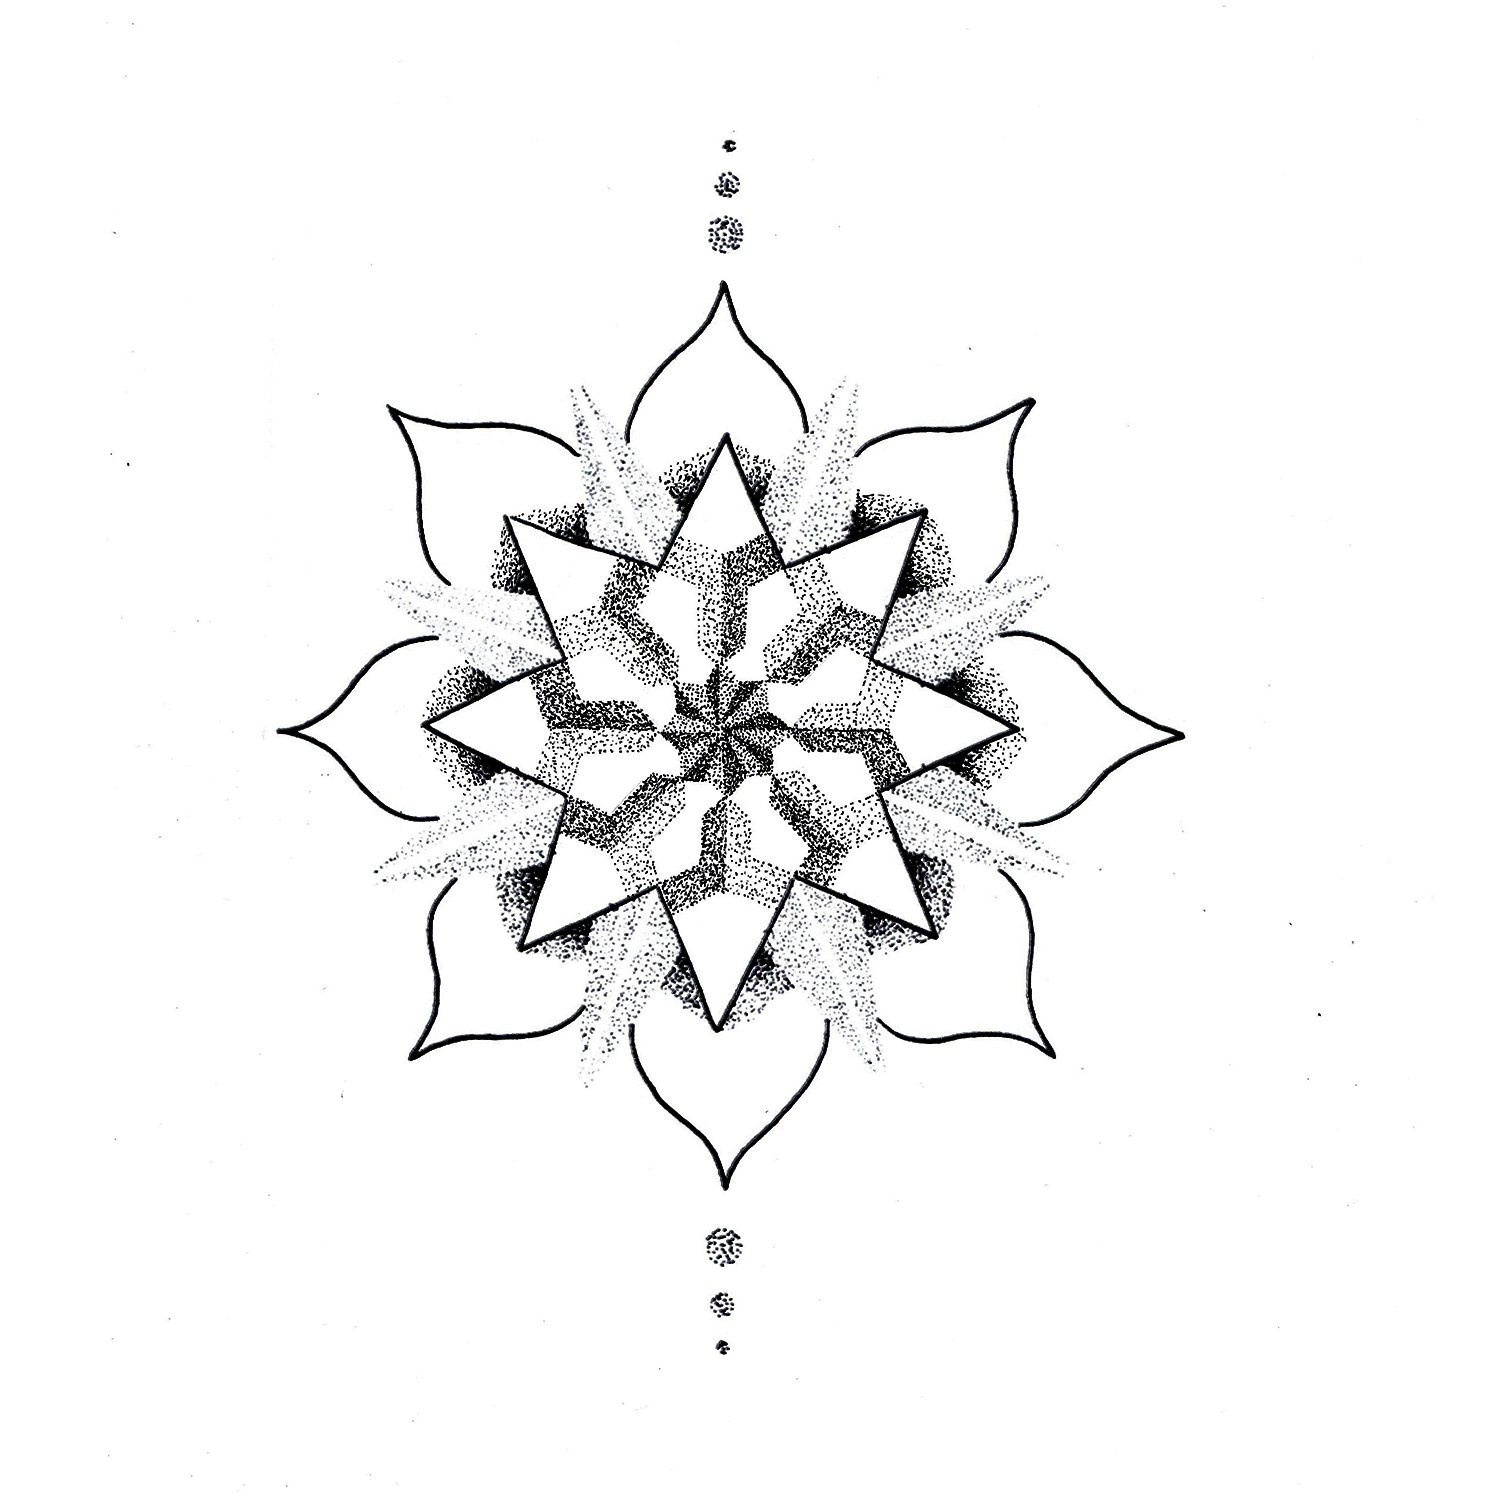 1500x1500 Lotus Drawing Geometric For Free Download